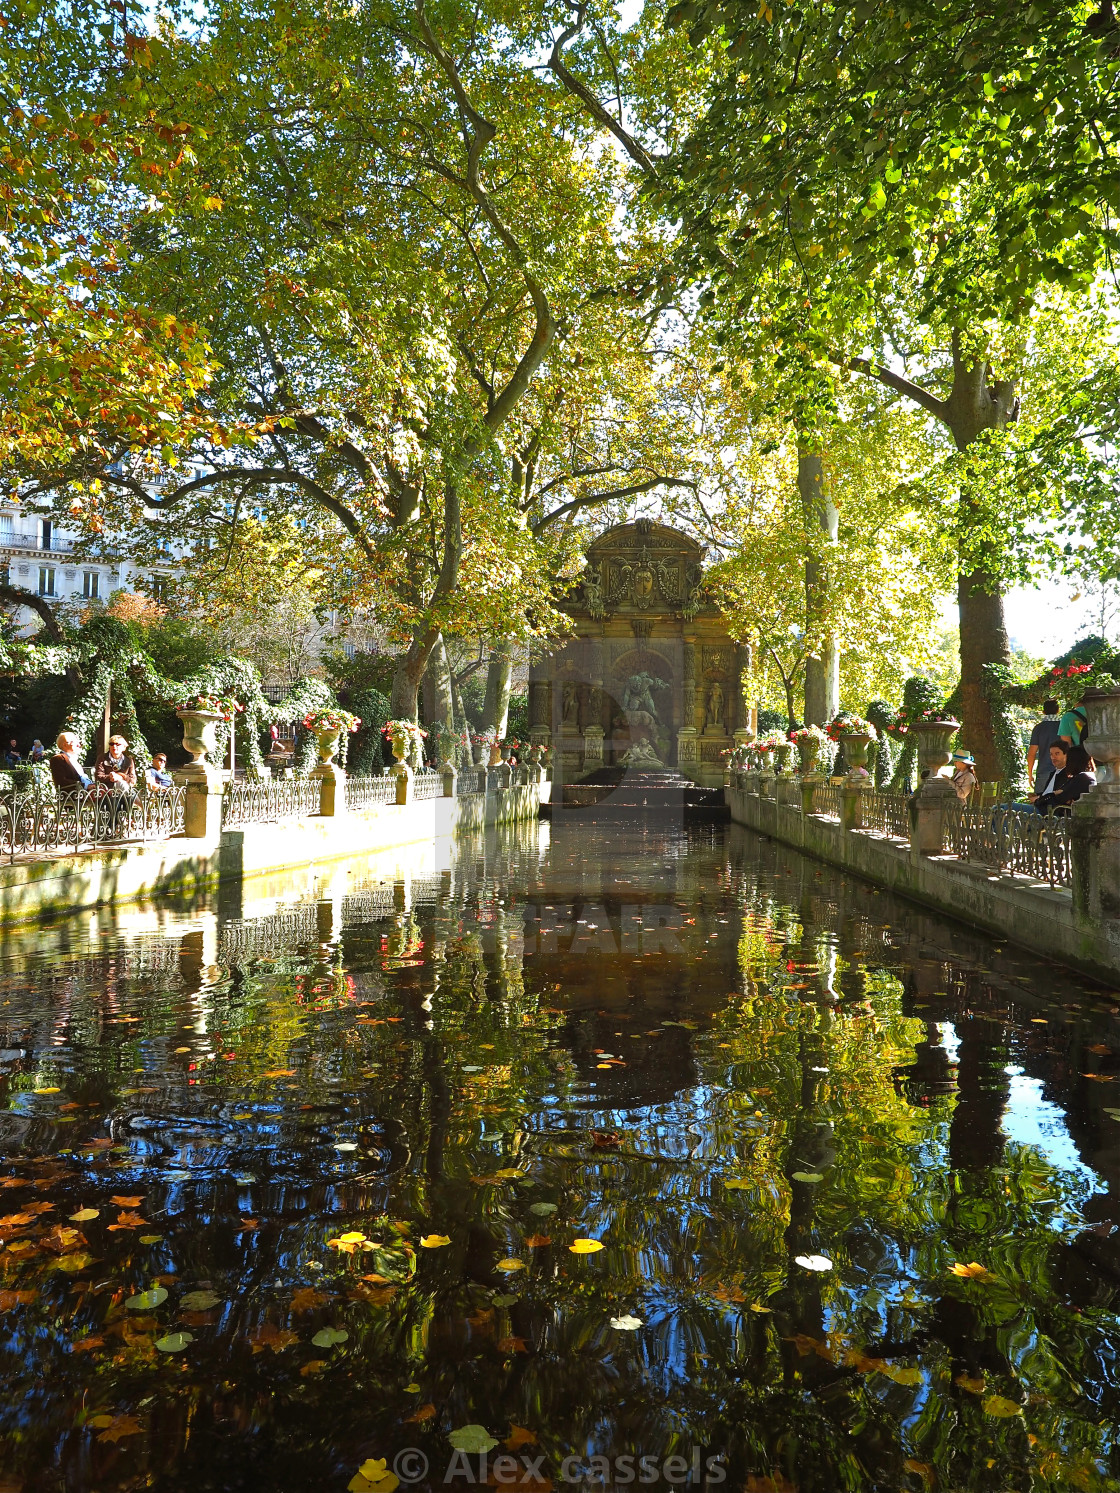 Image De Fontaine De Jardin la fontaine de medicis - license, download or print for